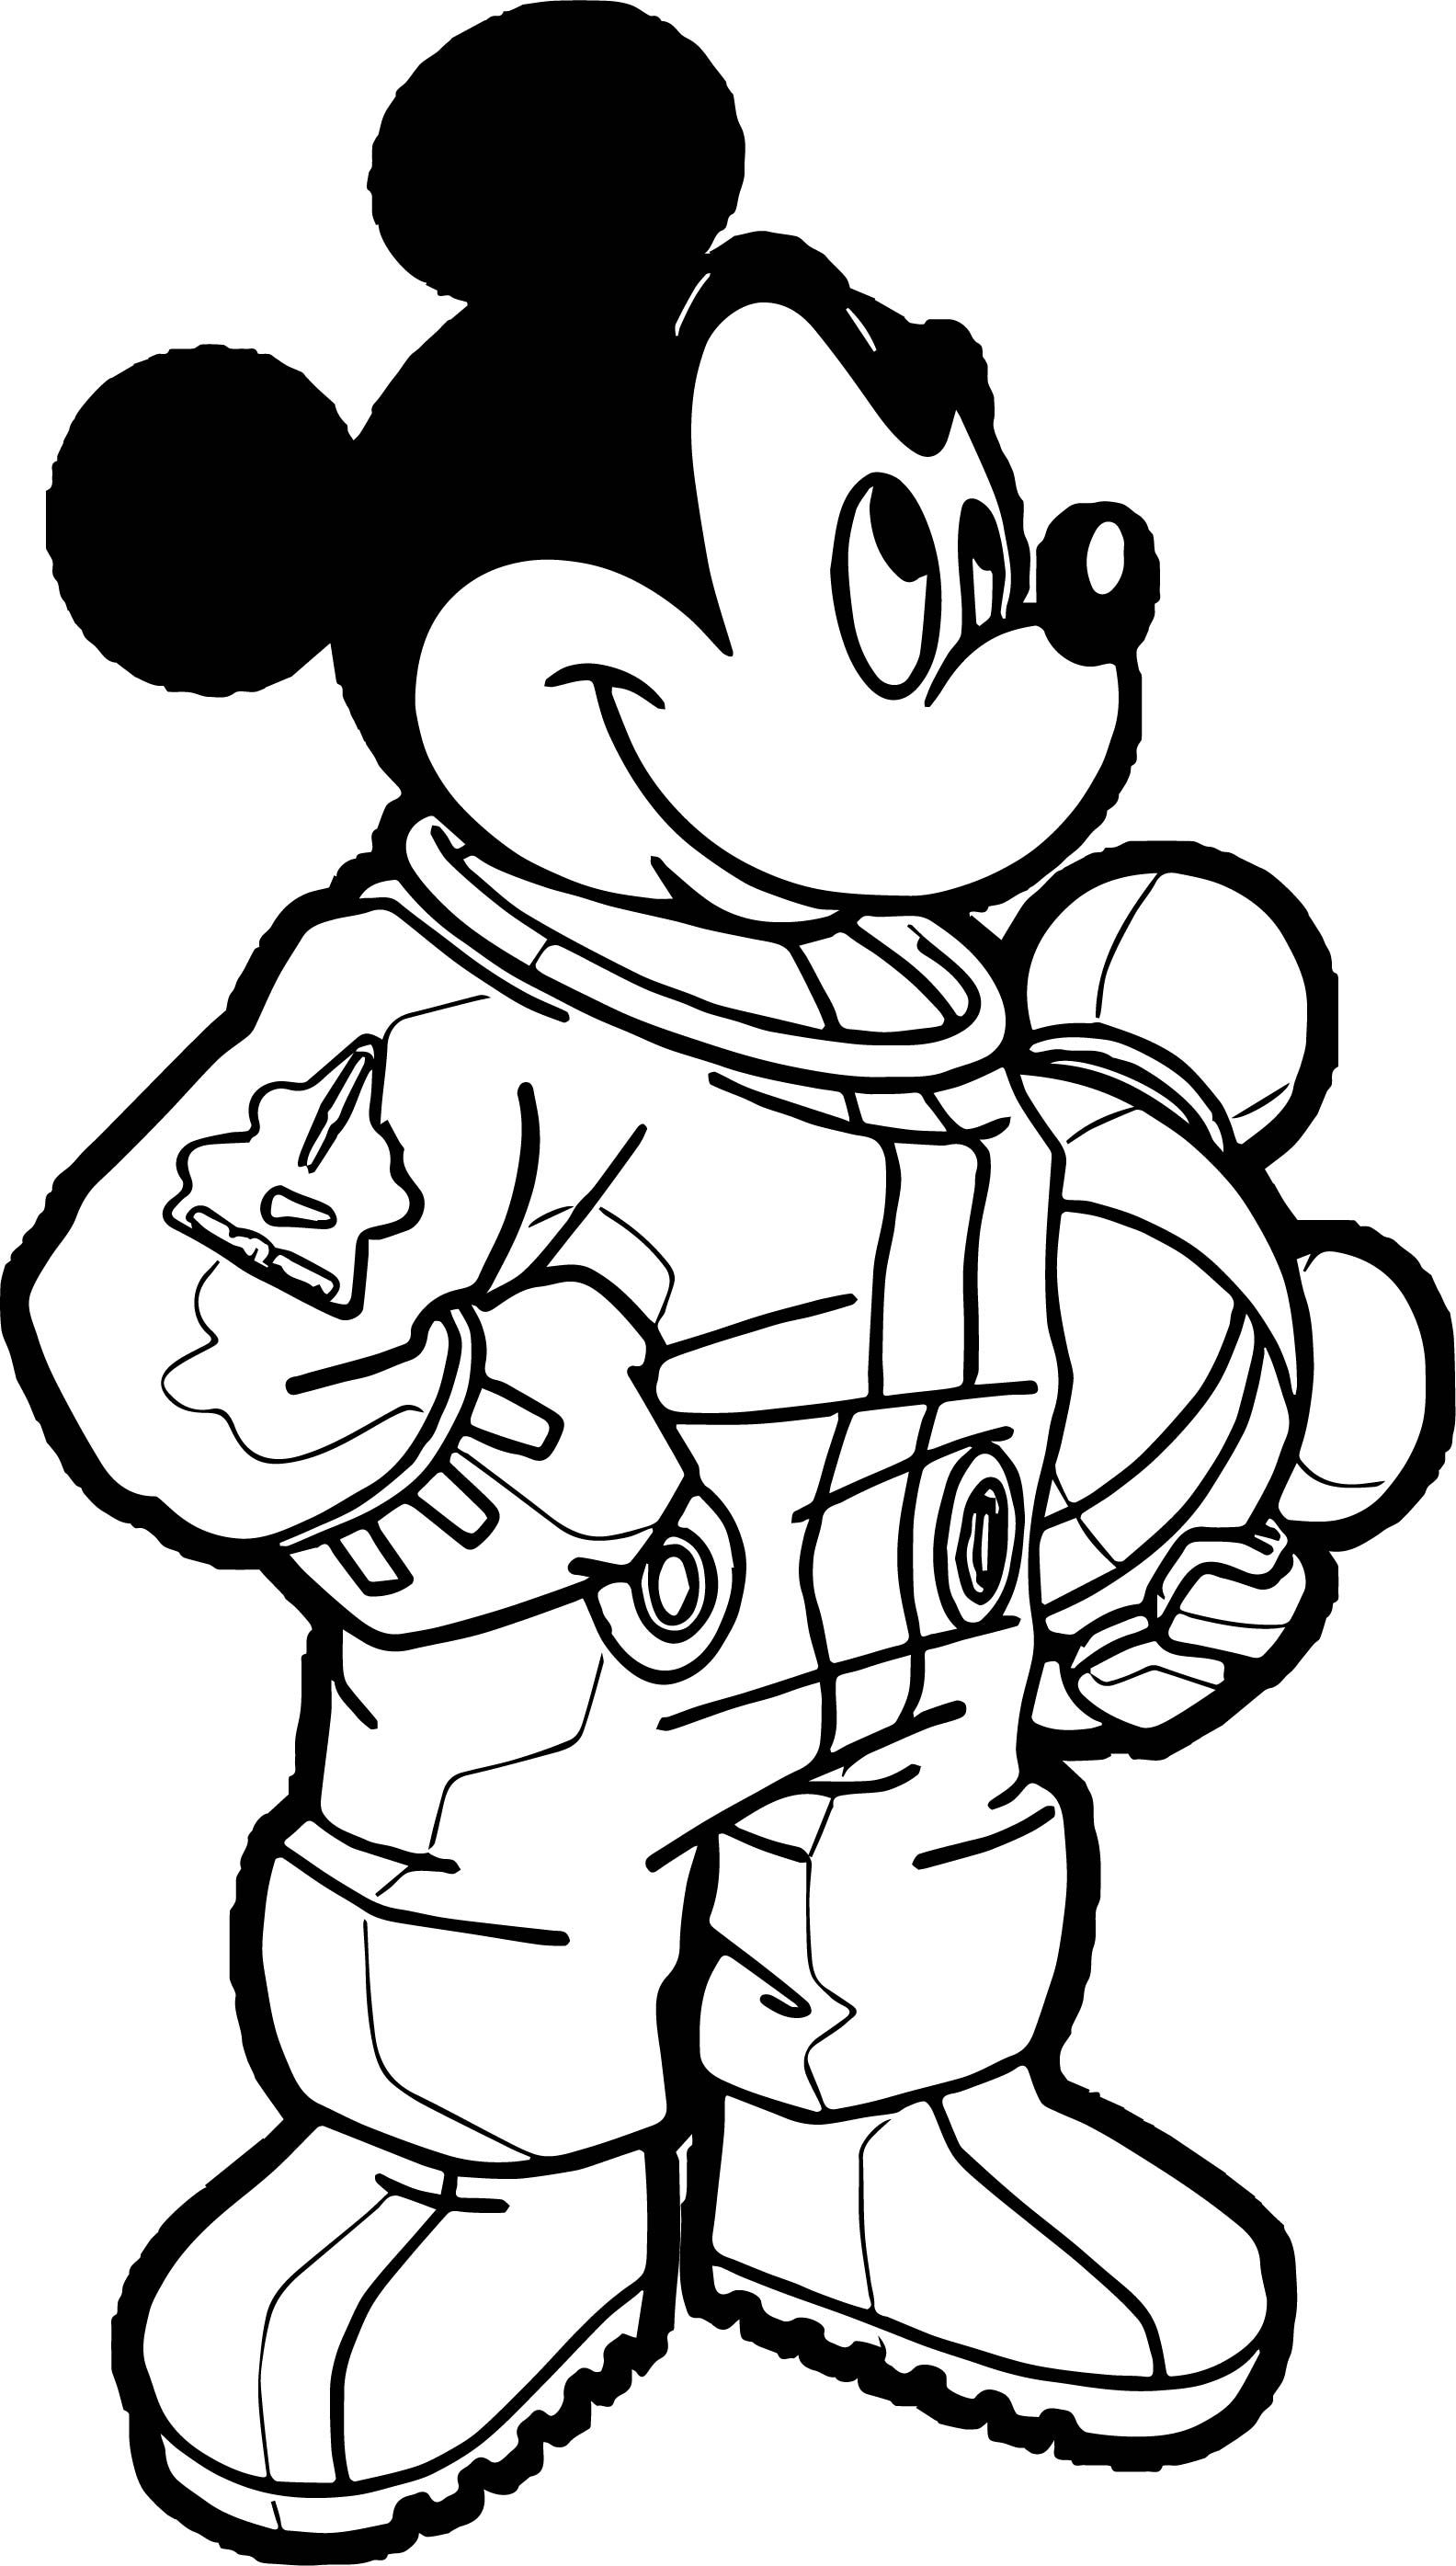 Awesome Astronaut Mickey Mouse Coloring Page Mickey Mouse Coloring Pages Space Coloring Pages Coloring Pages